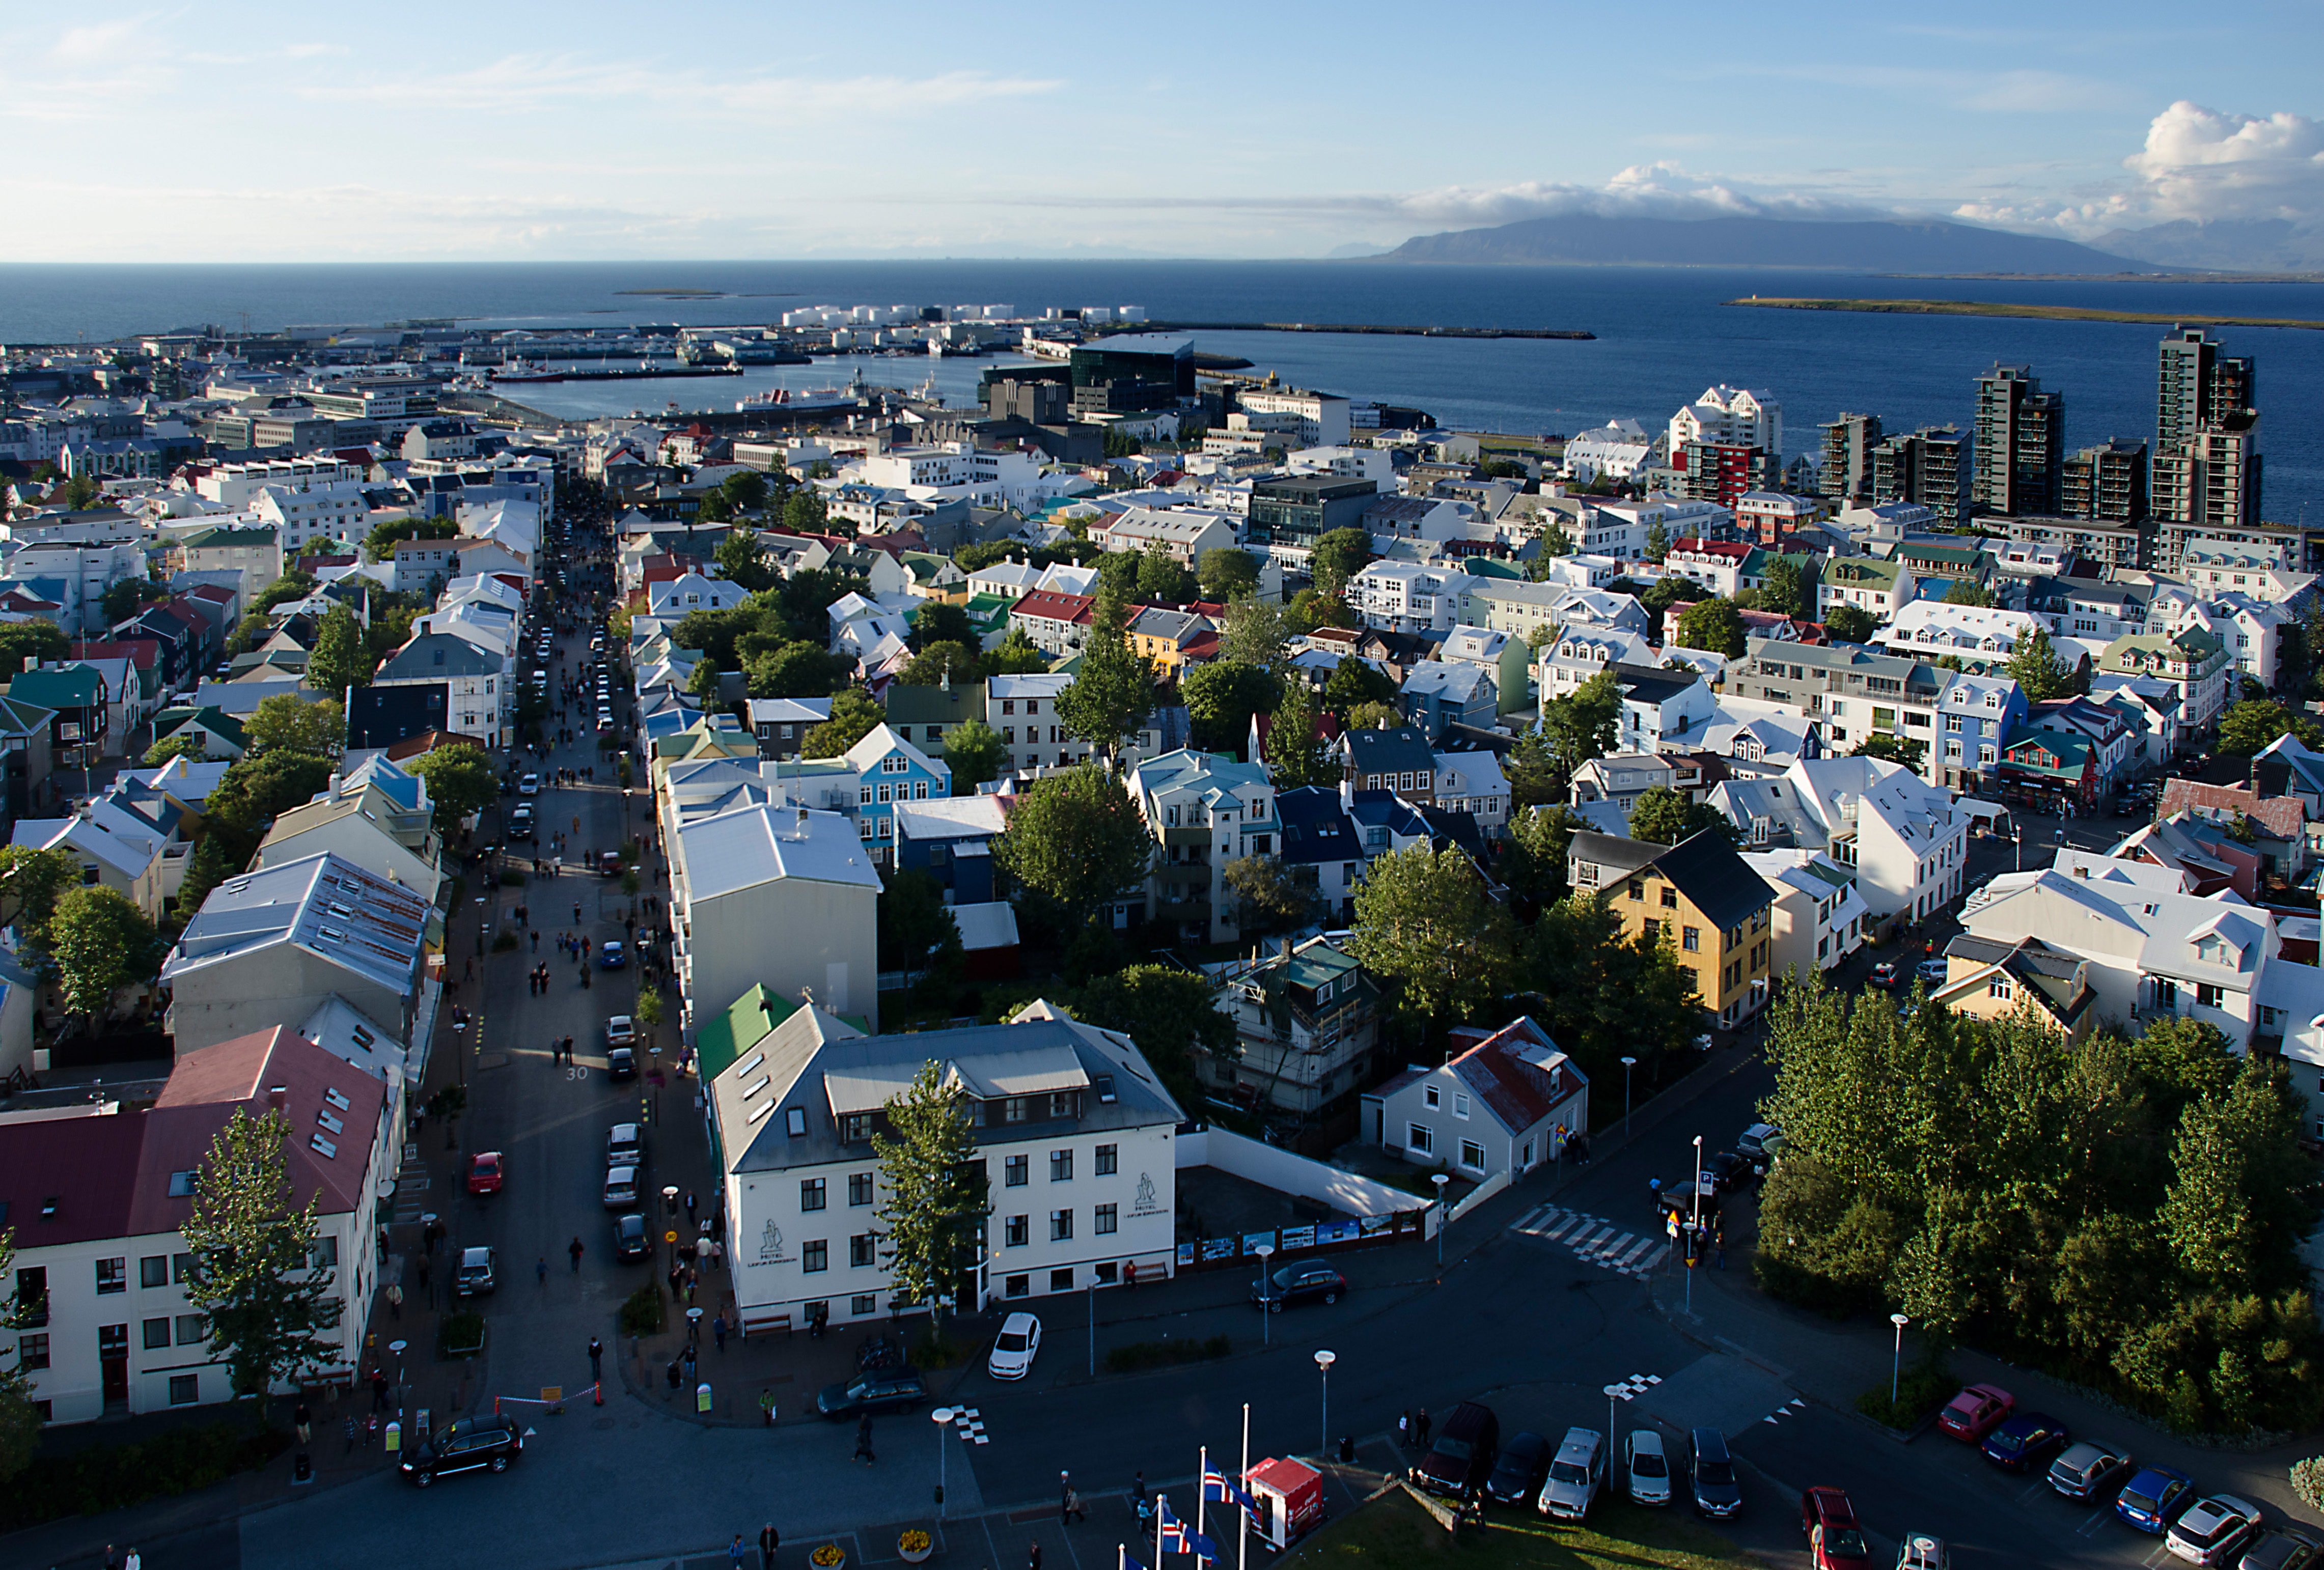 What does the future hold for Iceland's tourism?